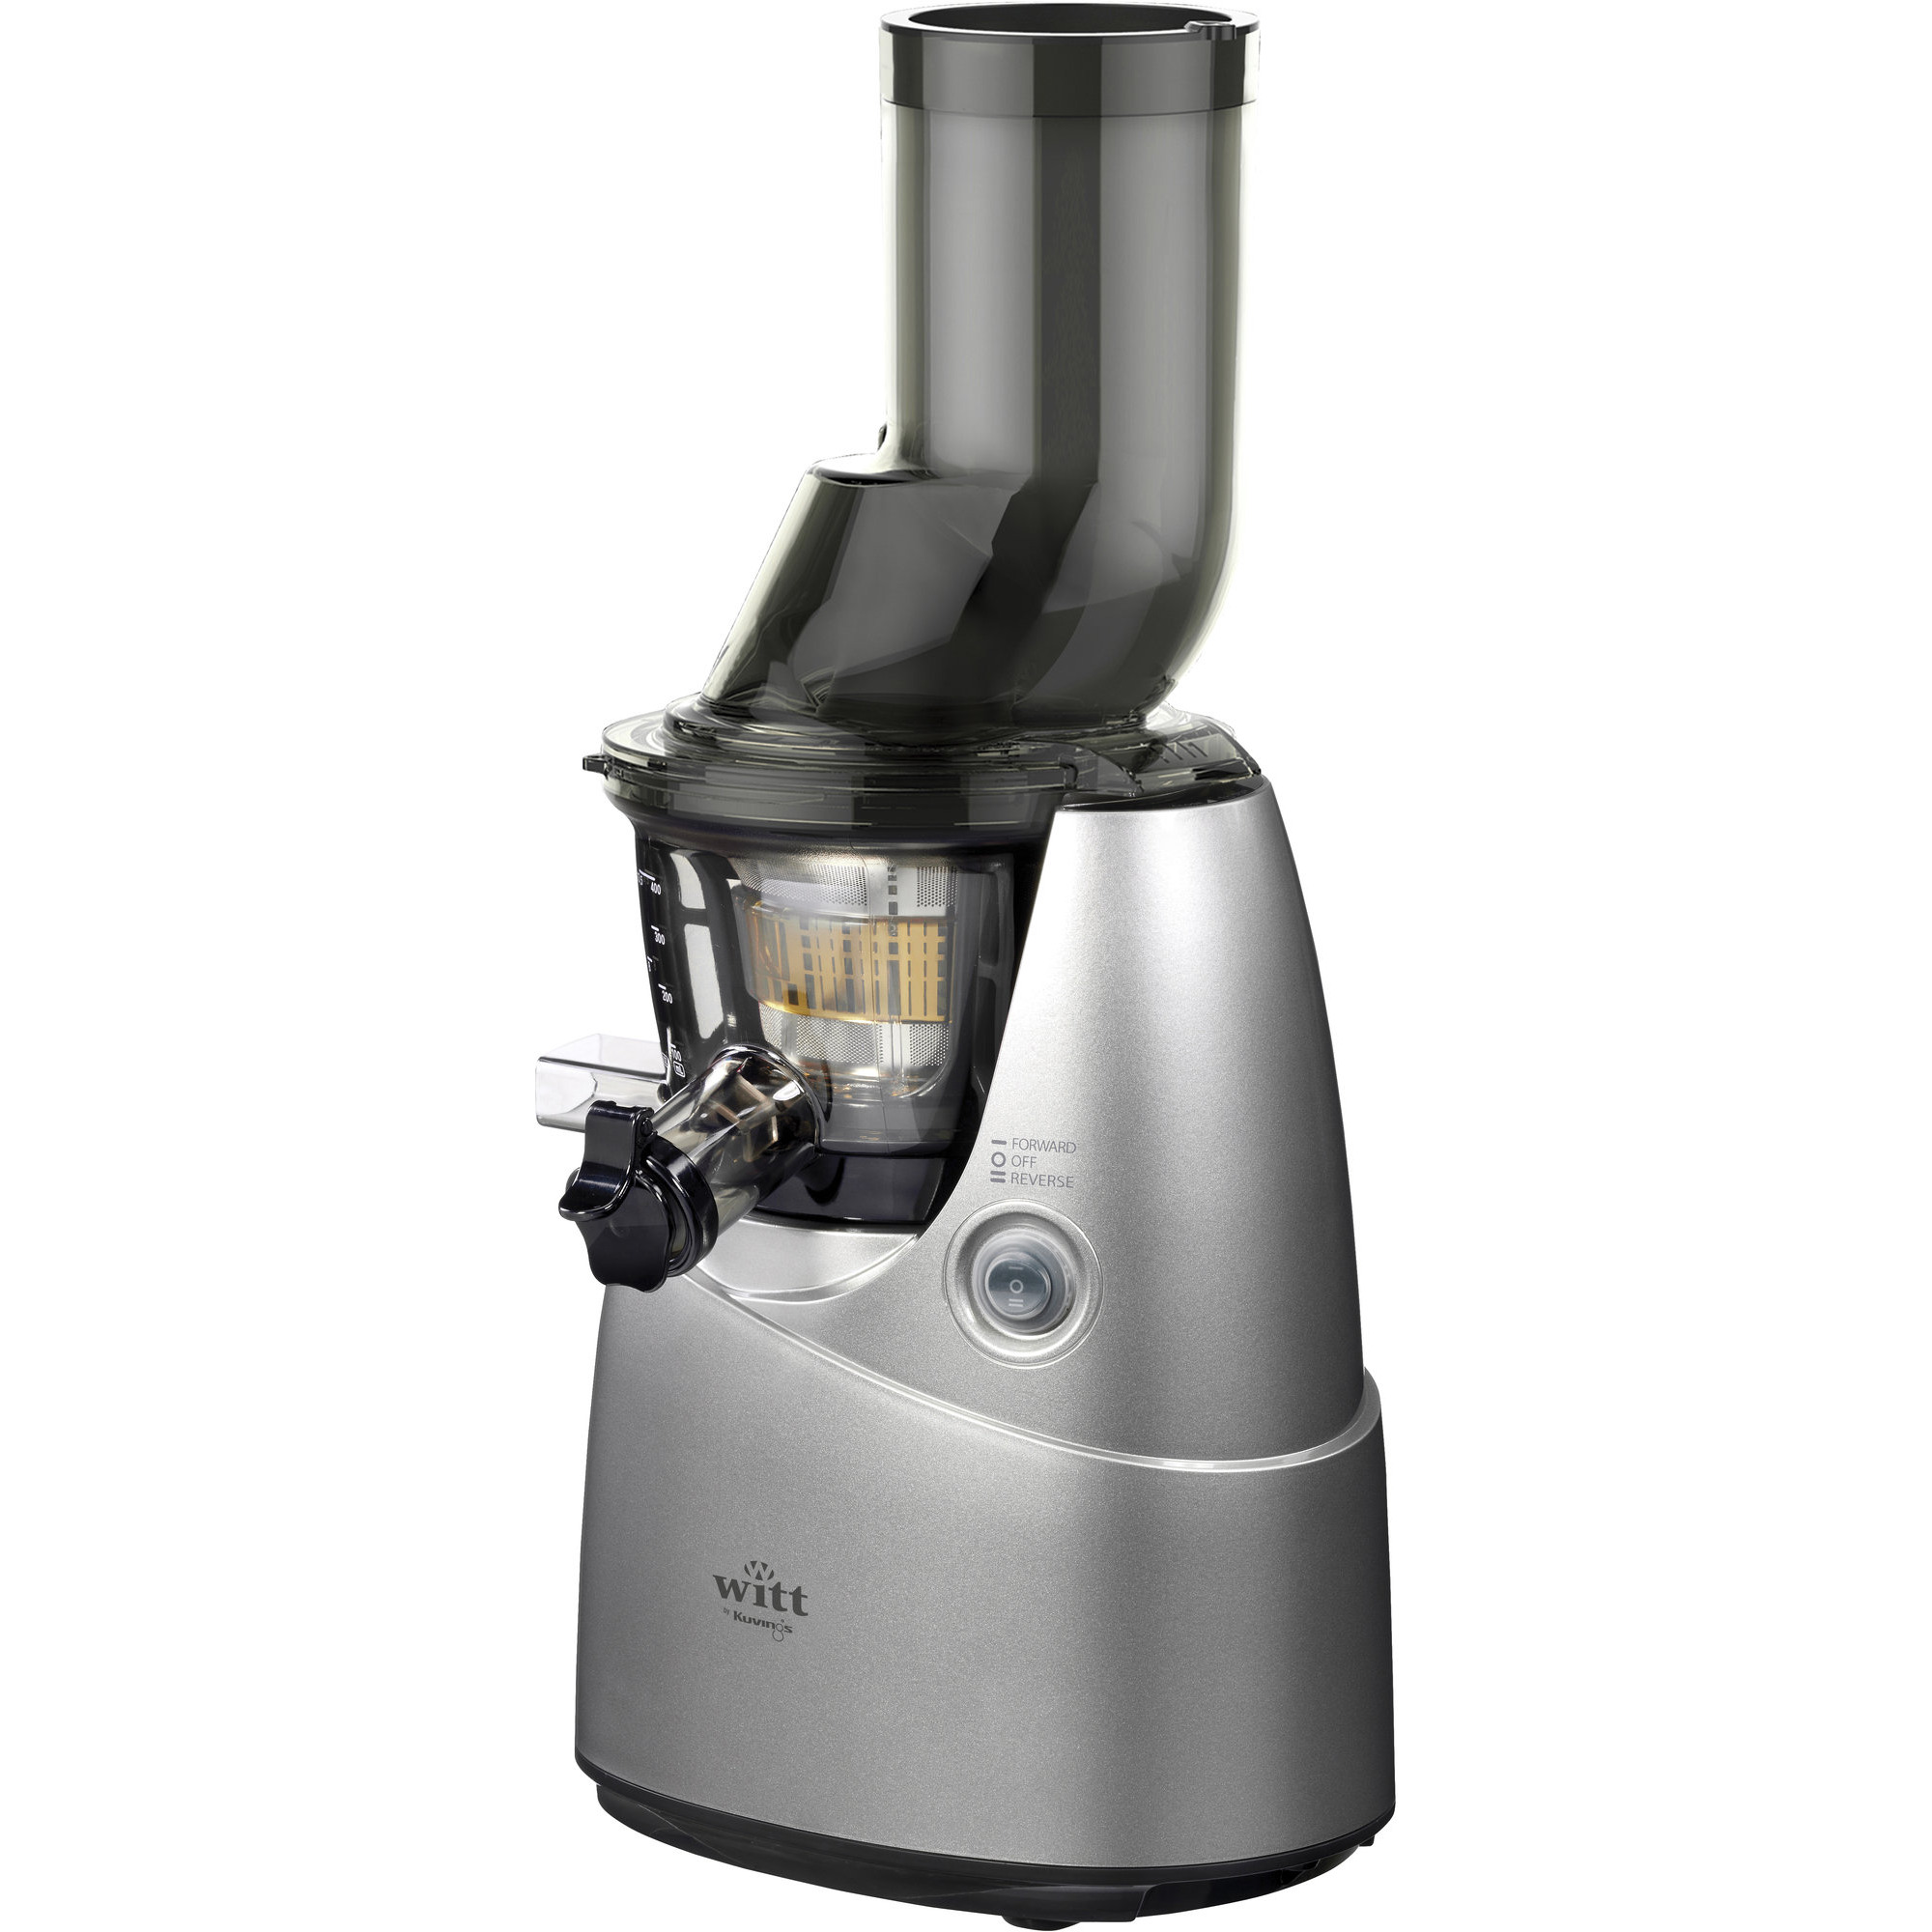 Witt By Kuvings B6100 Slow Juicer Pris : Kuvings B6100 Silver fran Witt by Kuvings Gratis leverans